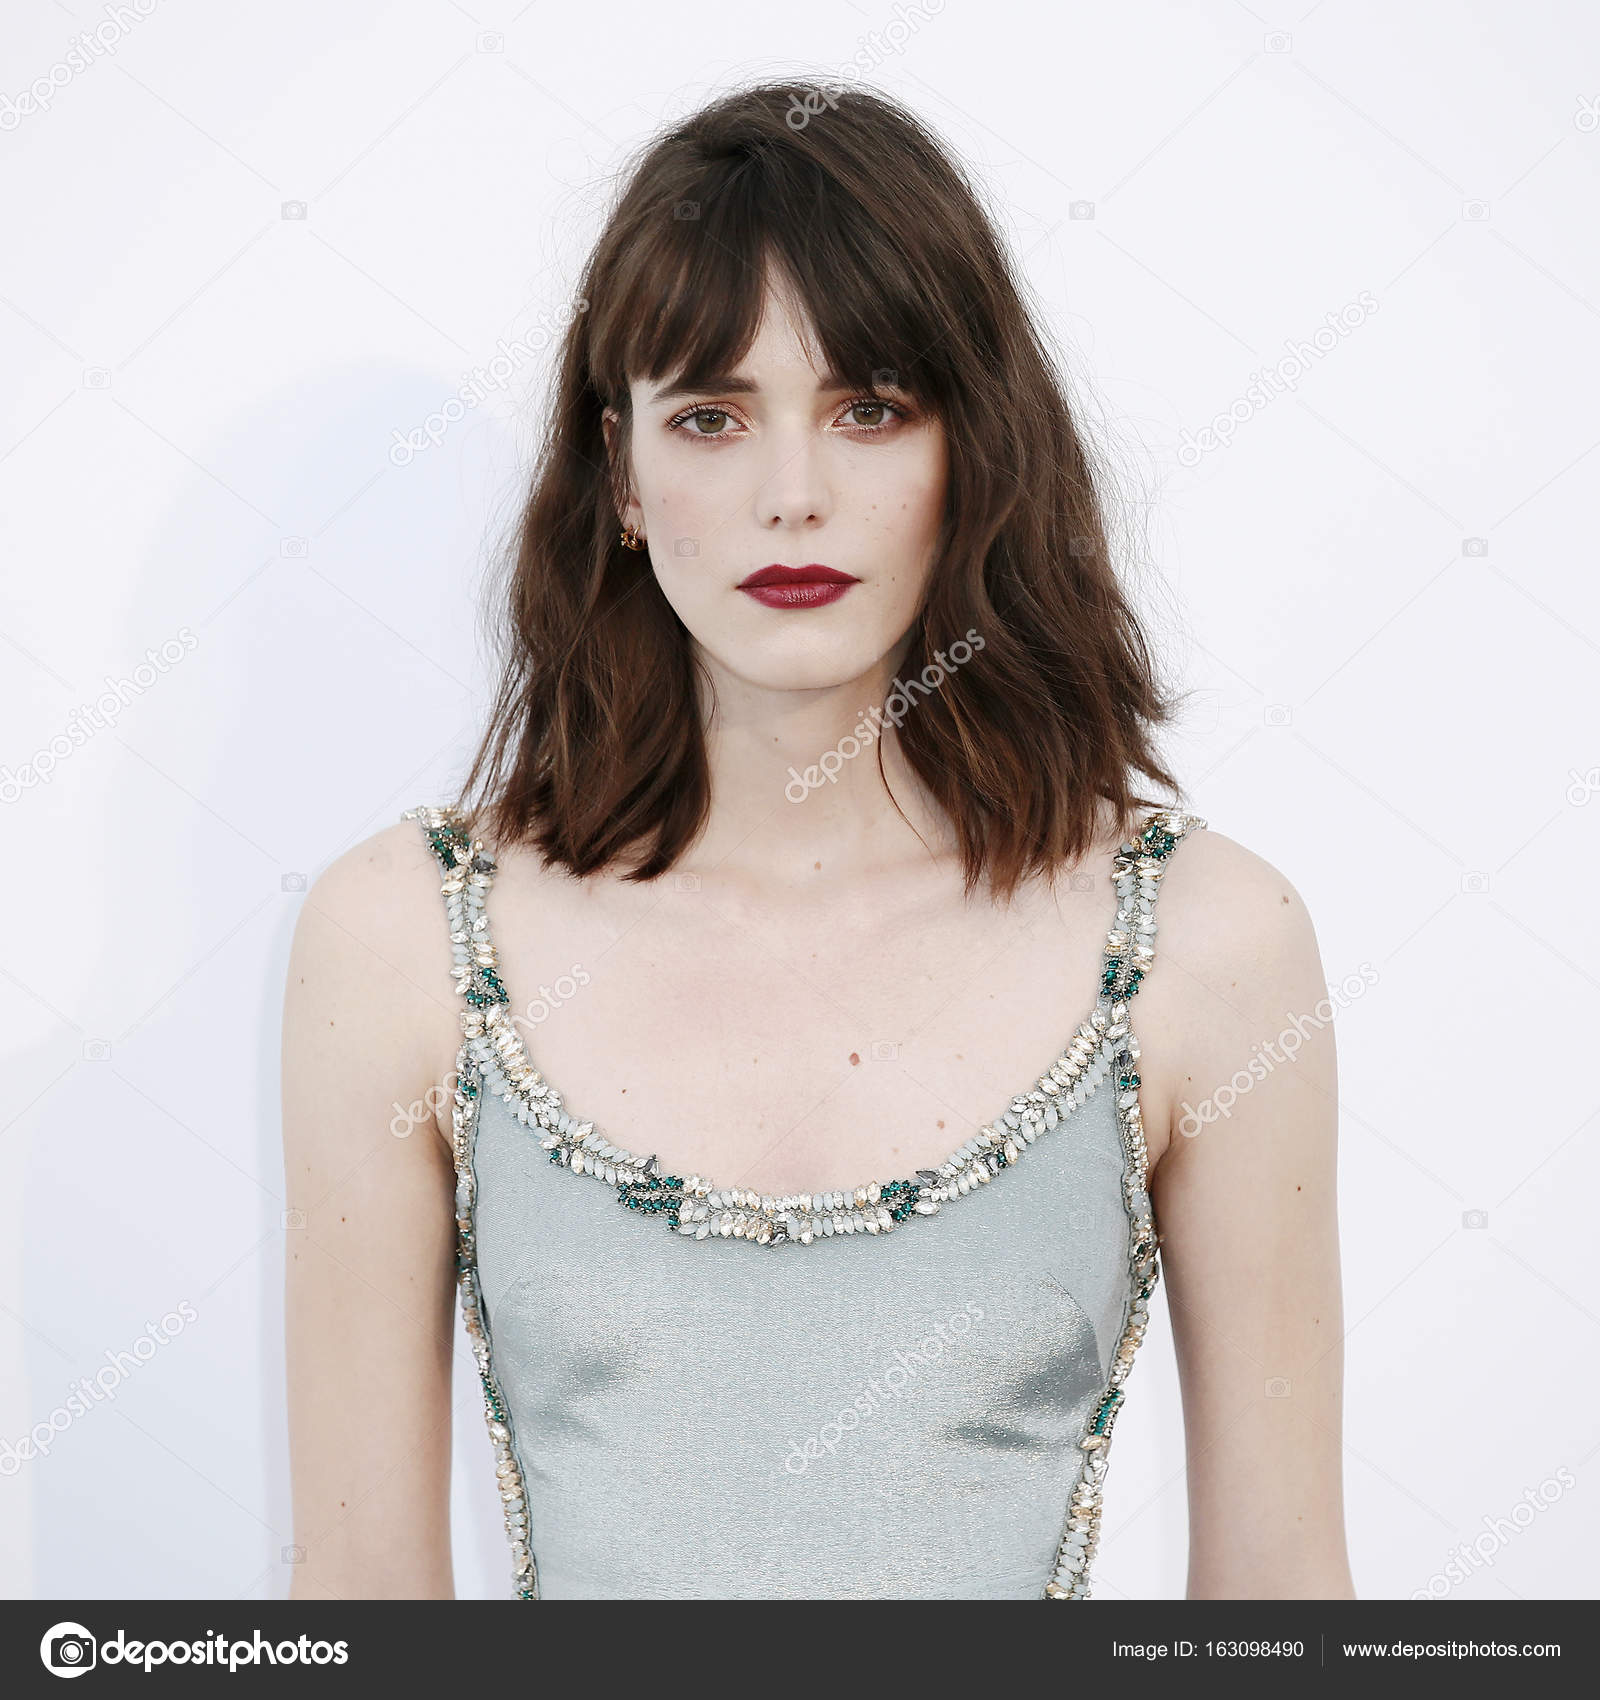 Paparazzi Stacy Martin naked (64 photo), Topless, Cleavage, Boobs, butt 2019